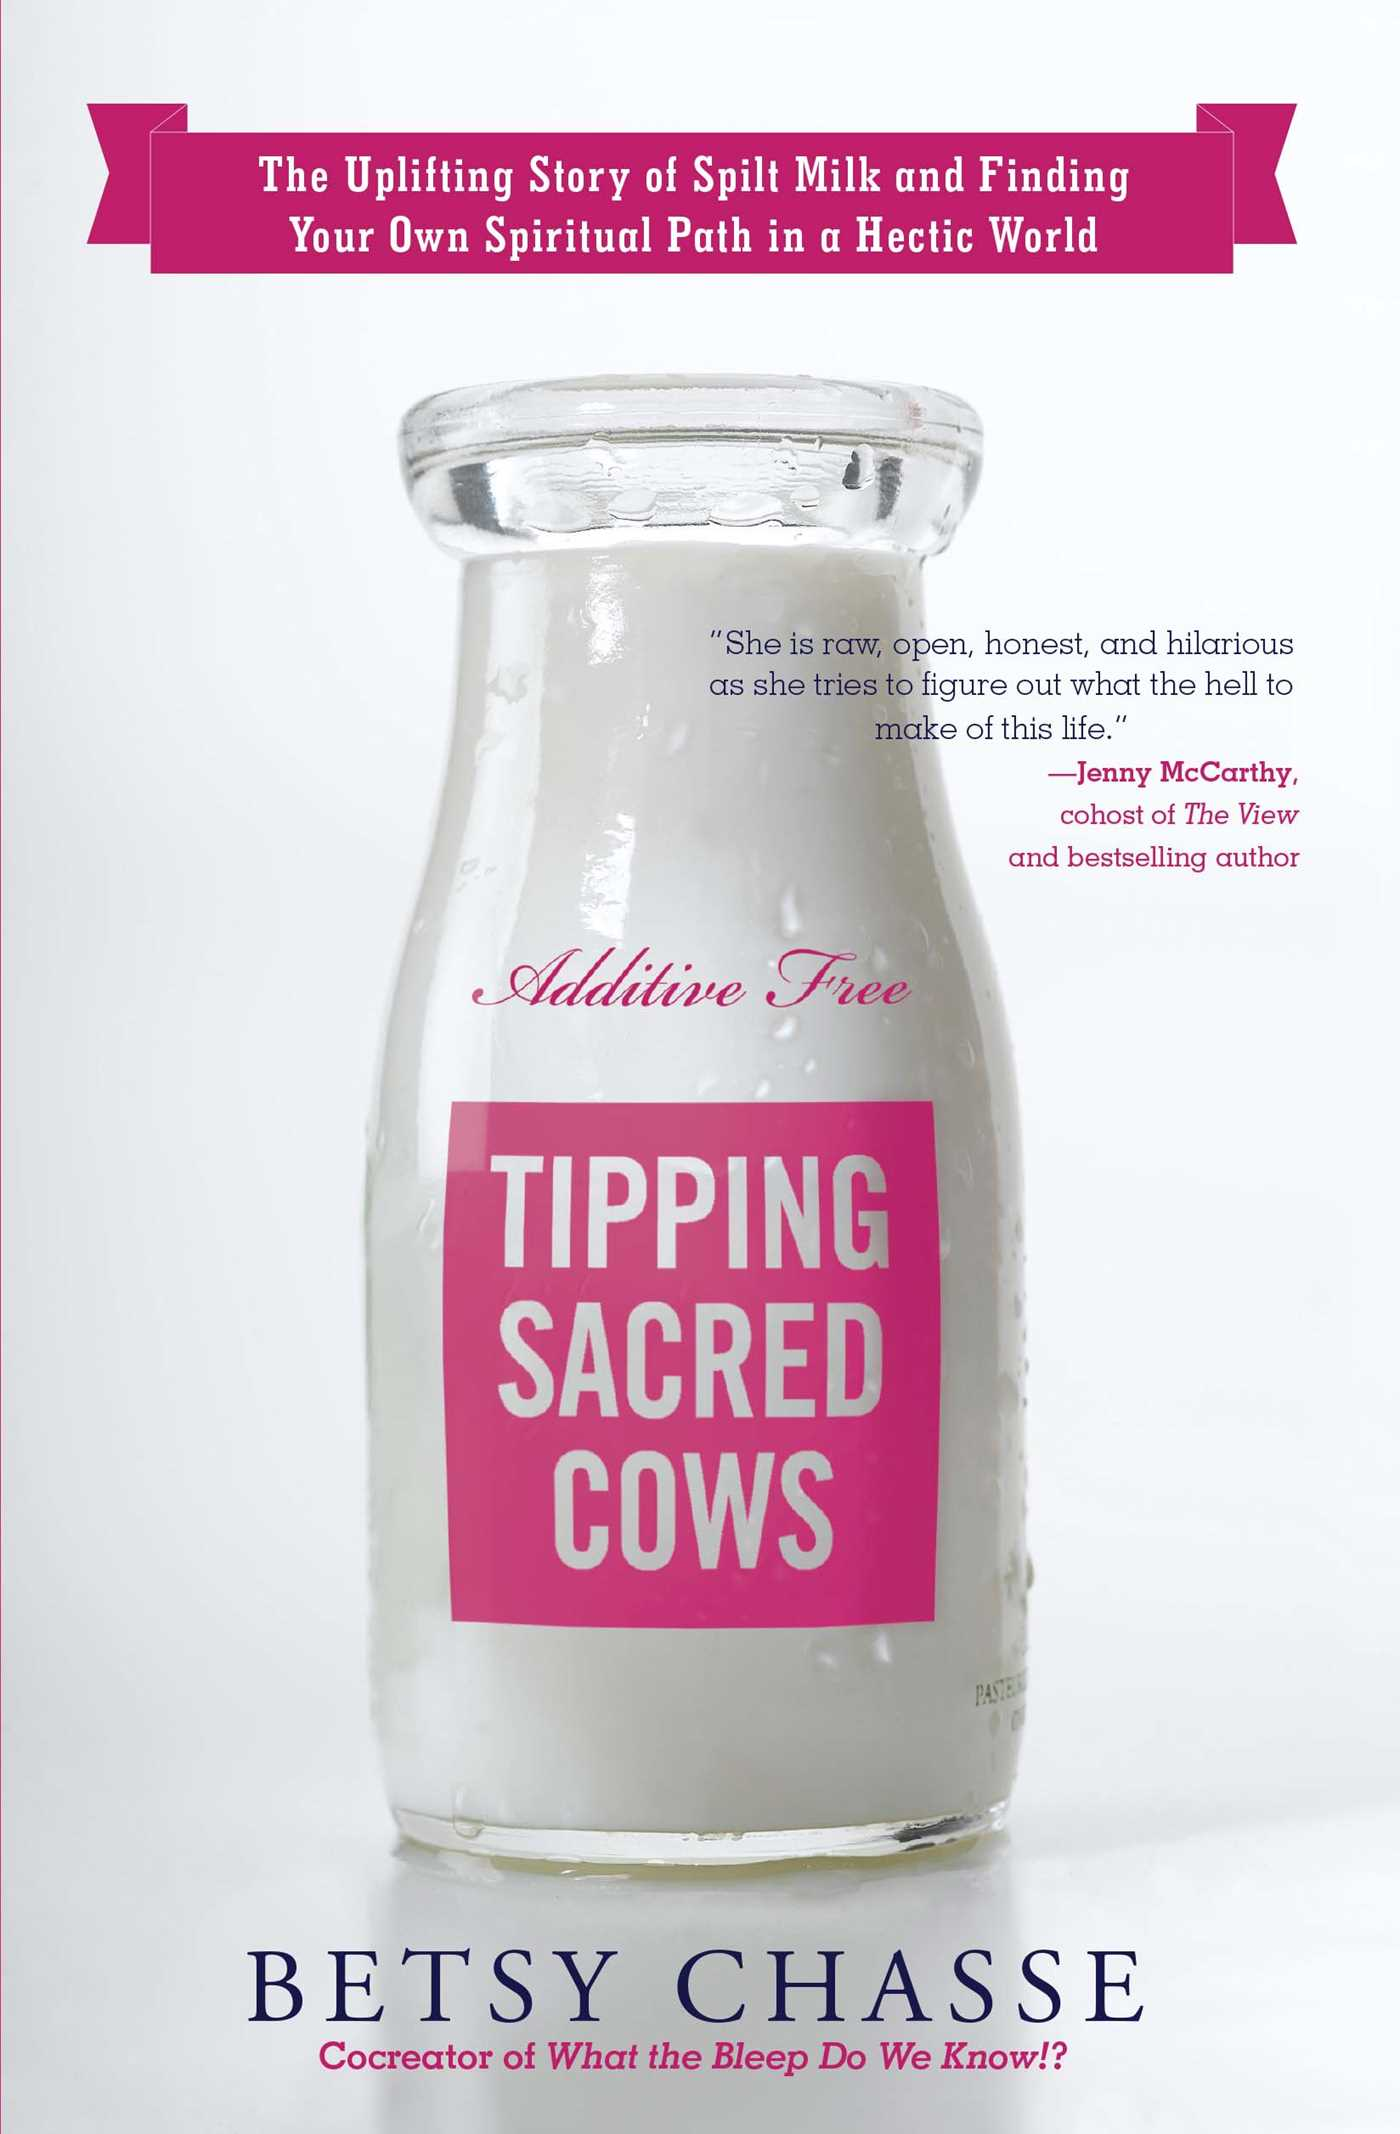 Tipping-sacred-cows-9781582704609_hr